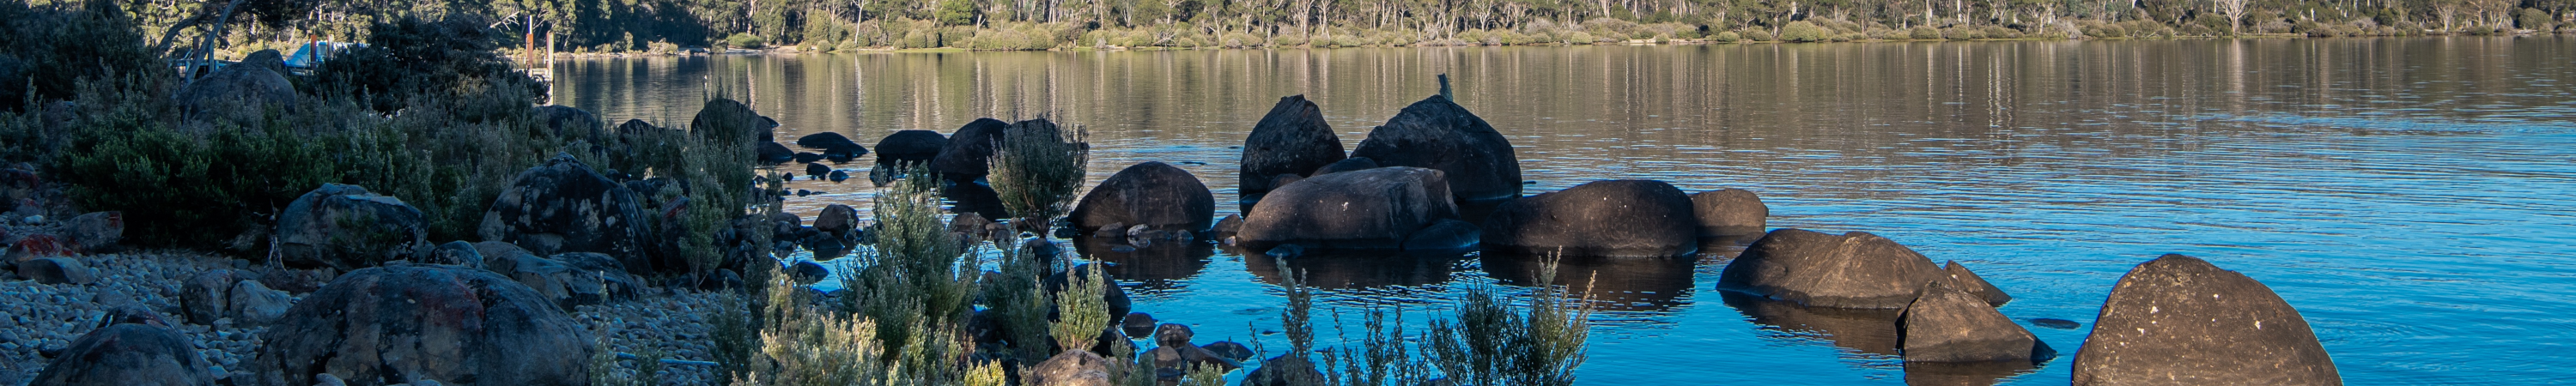 Lake St Claire, Cradle Mountain-Lake St Clair National Park, Central Highlands, Tasmania